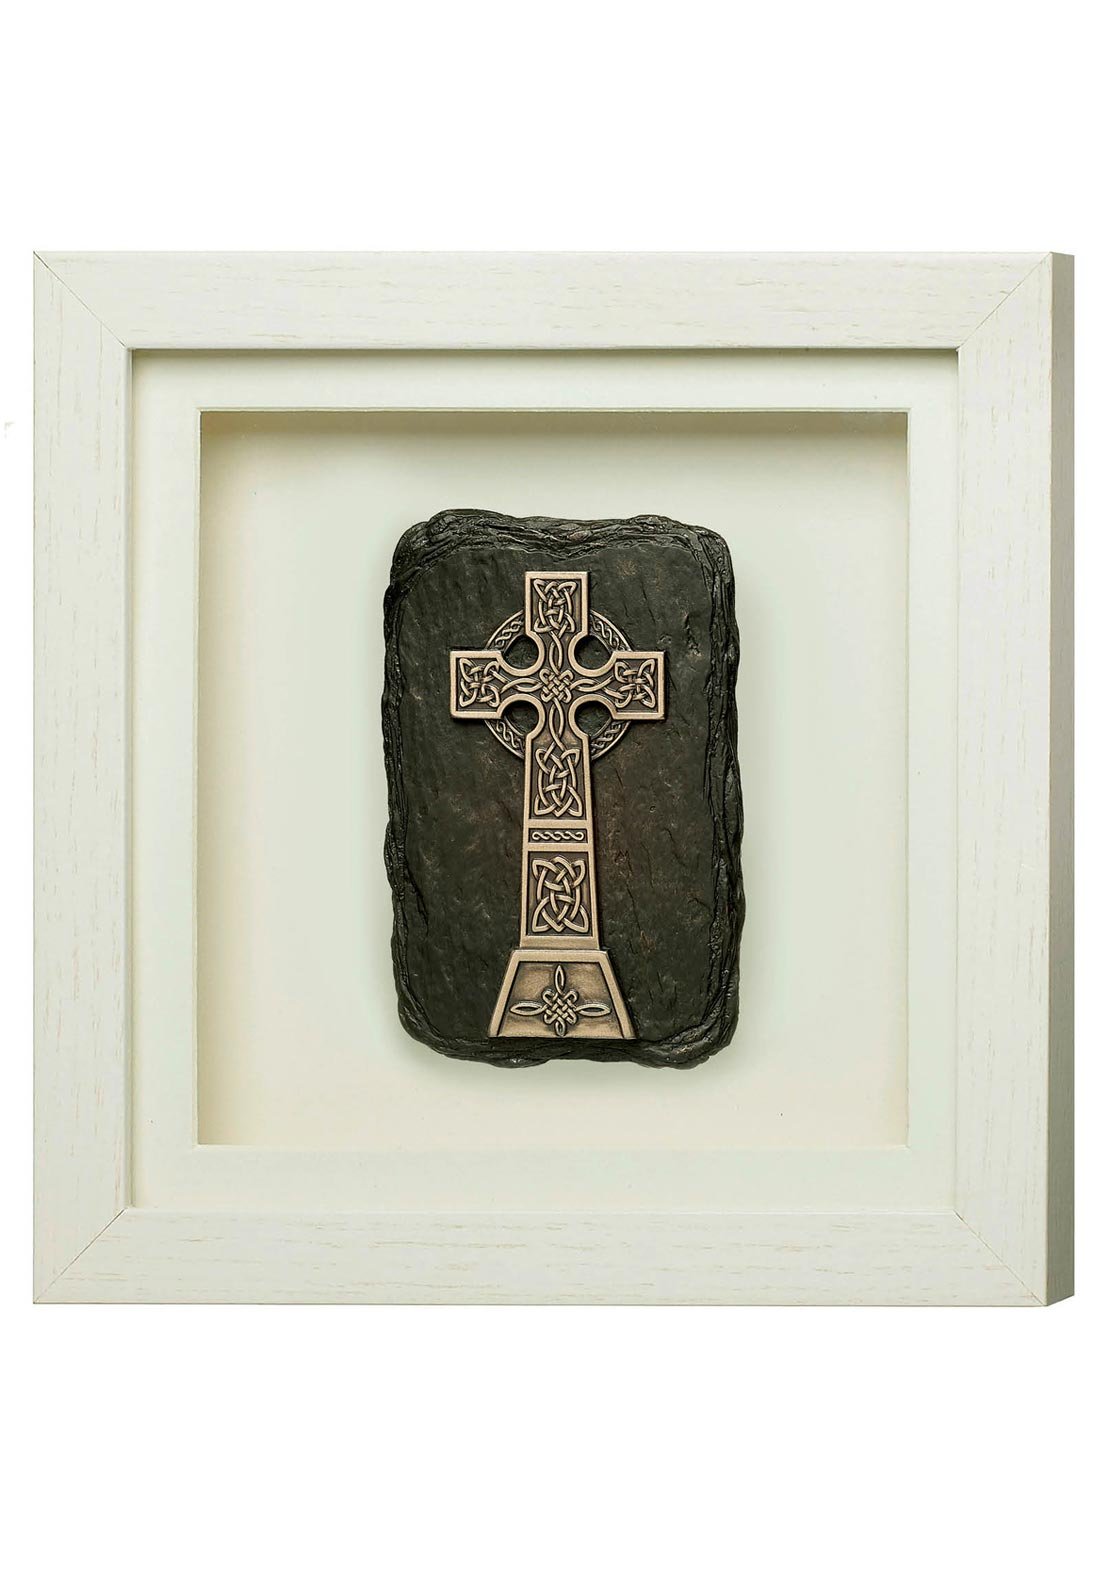 Genesis High Cross Frame White Ornament